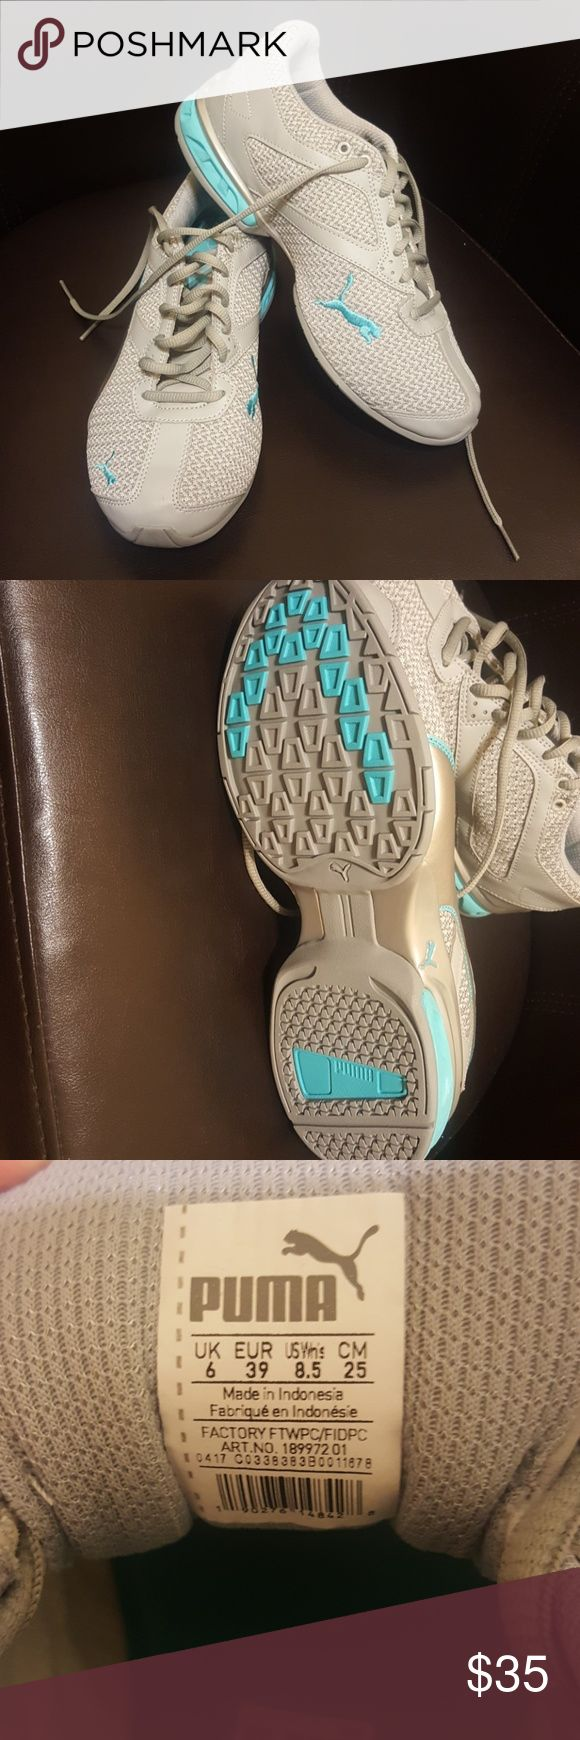 Puma Tennis Shoes NEW!! Womens size 6 shoes. Never worn. Brand new!! Puma Shoes Sneakers